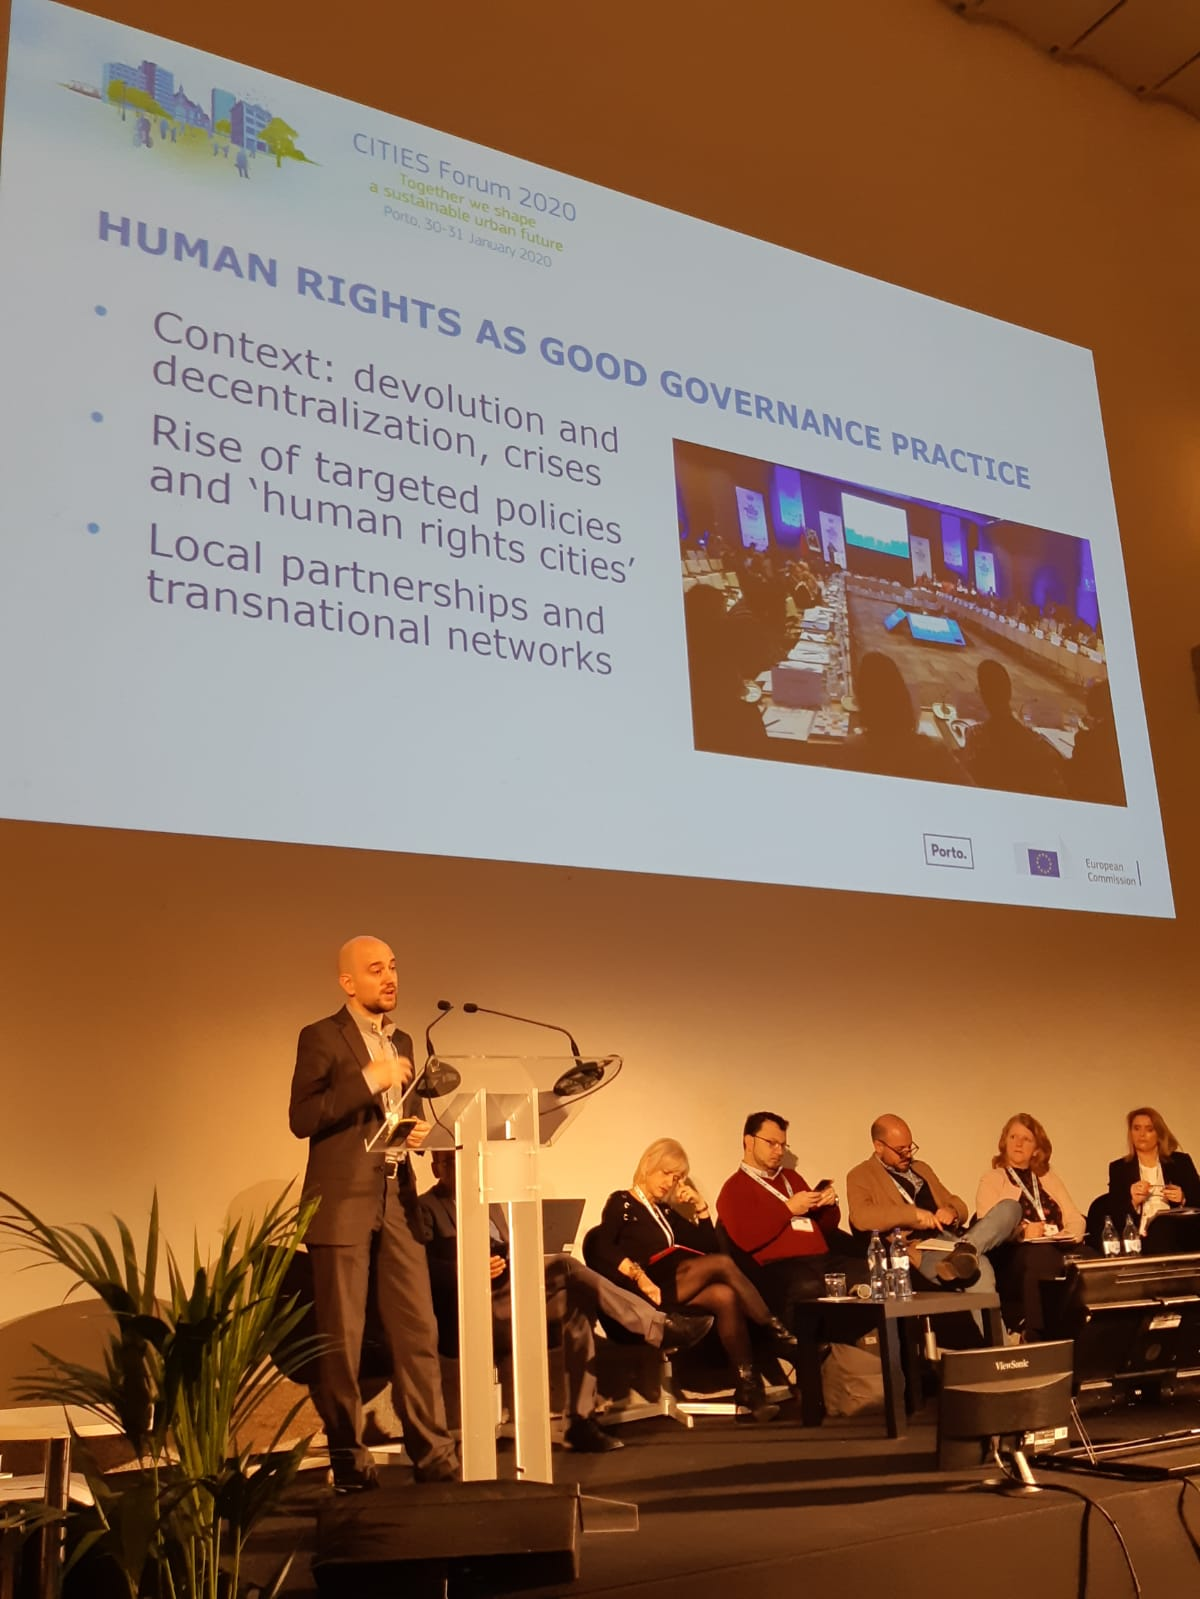 Panel on cities as guardians of human rights